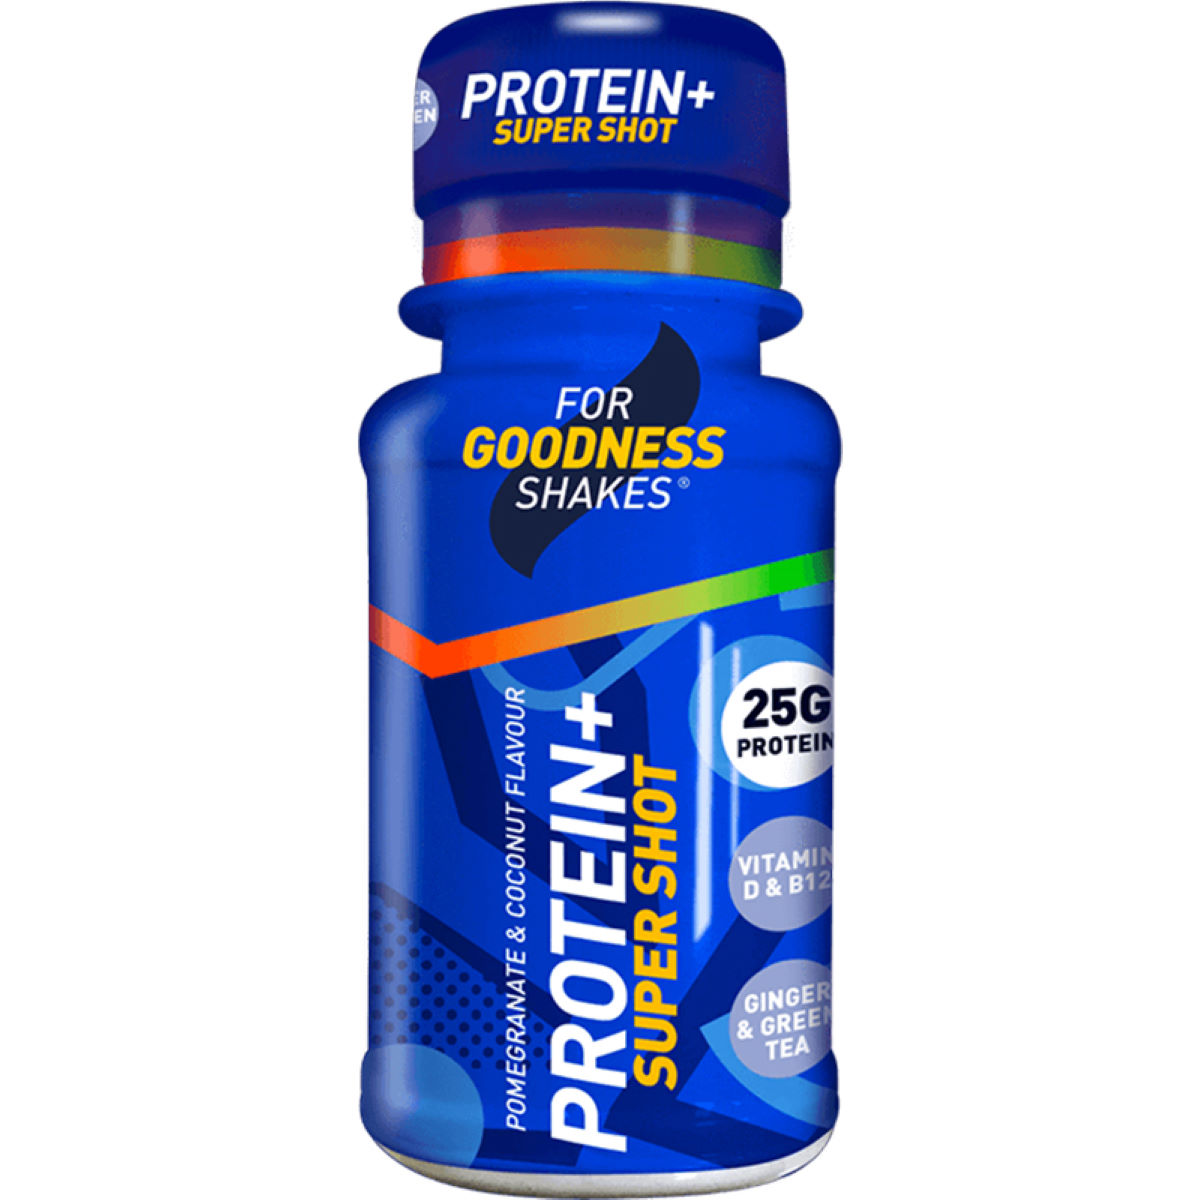 For Goodness Shakes For Goodness Shakes Protein+ Super Shot (12 X 60ml